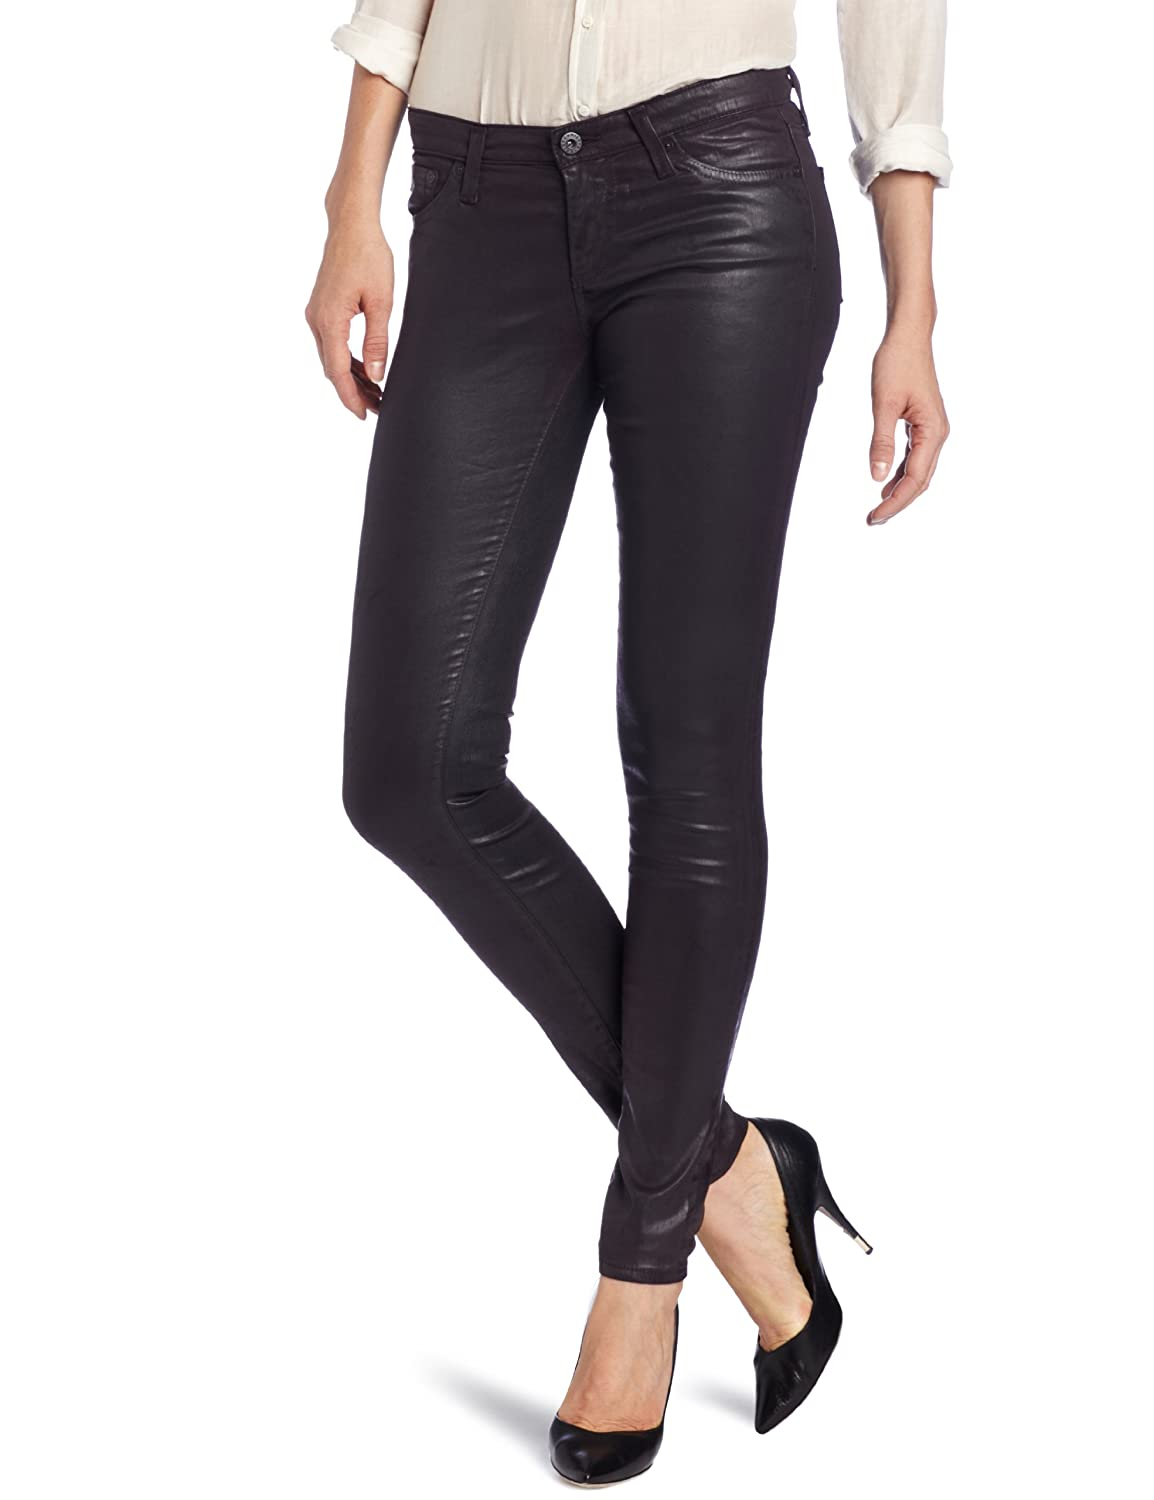 AG Adriano Goldschmied Women's Leatherette Legging LSN1288